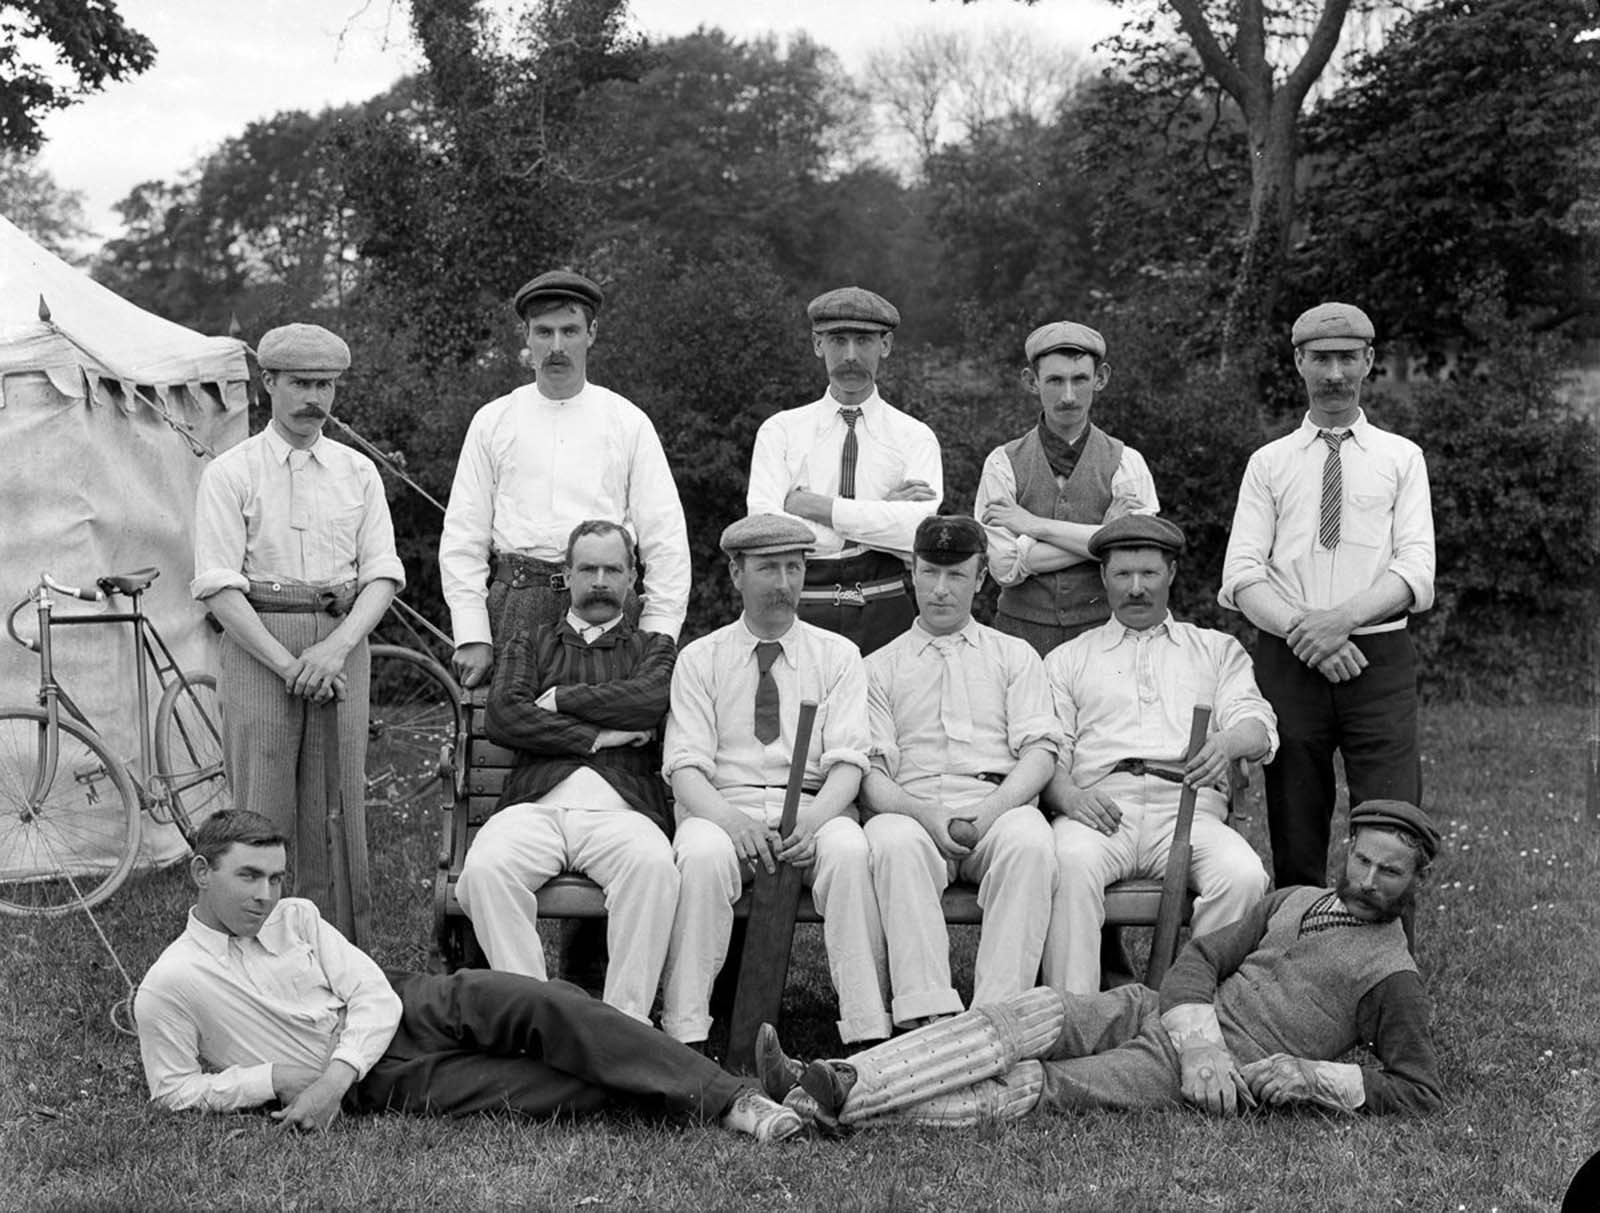 Cricket players. 1902.